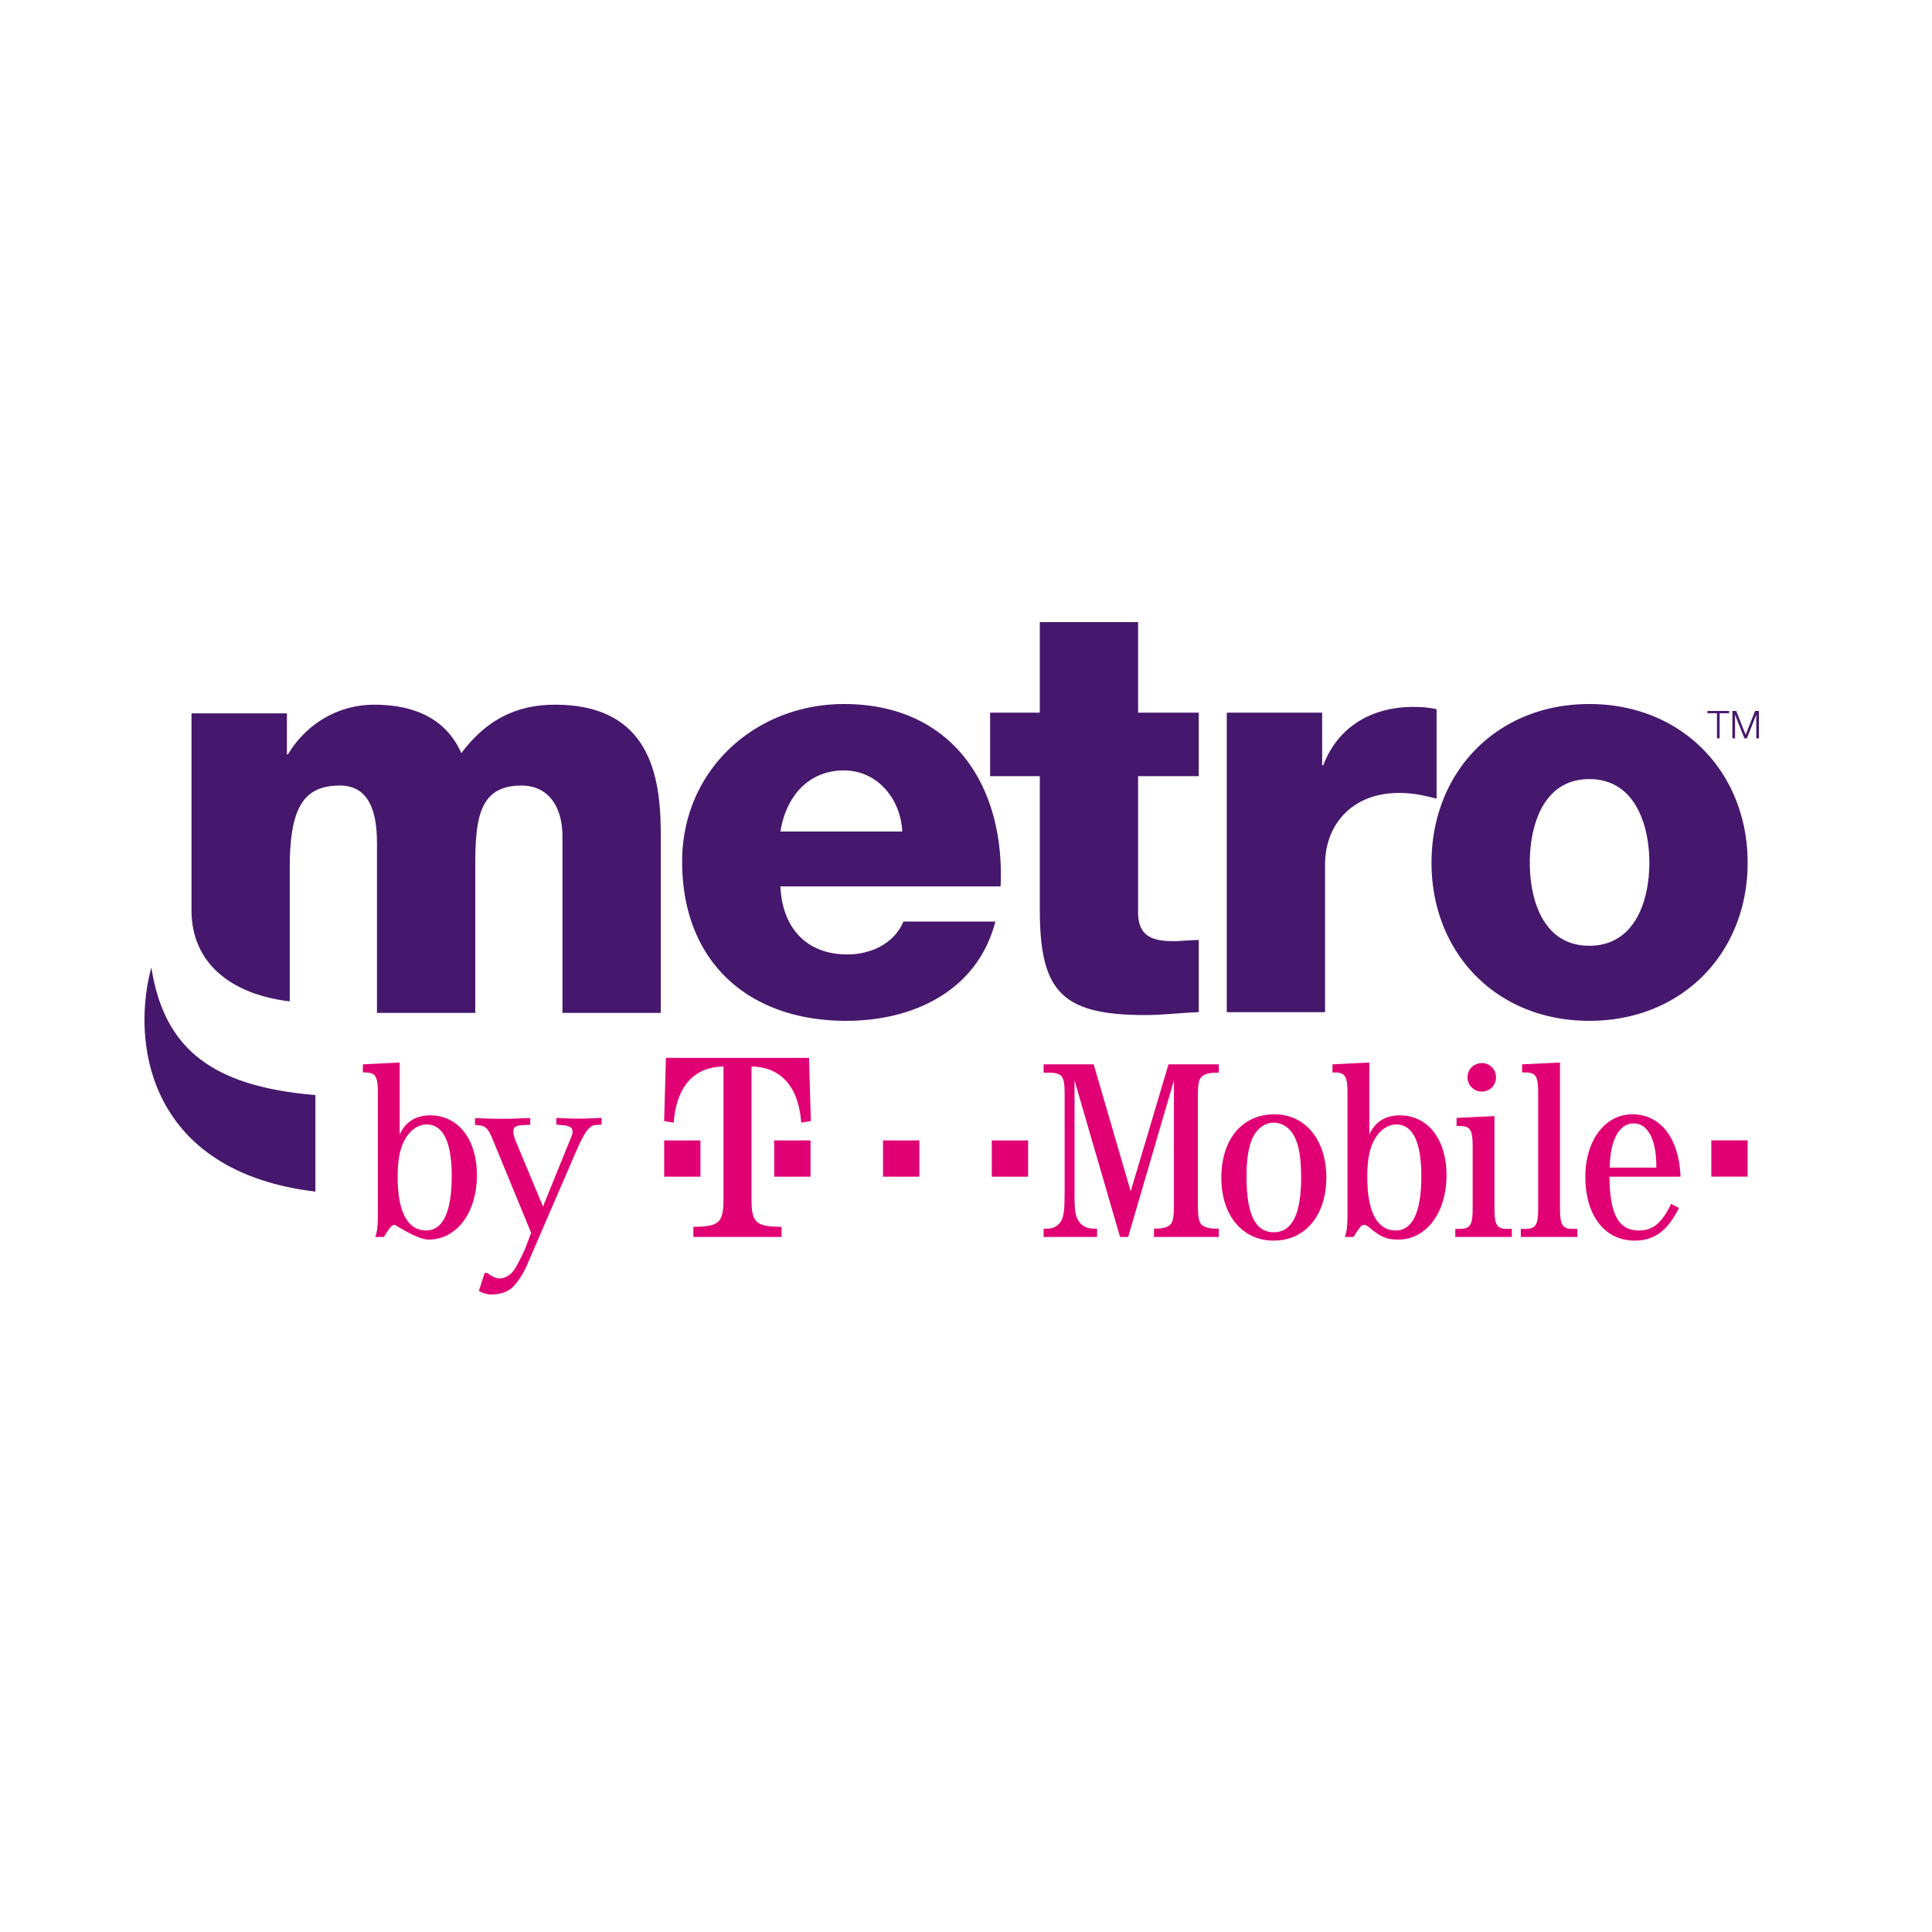 Metro by T-Mobile - Closed image 1